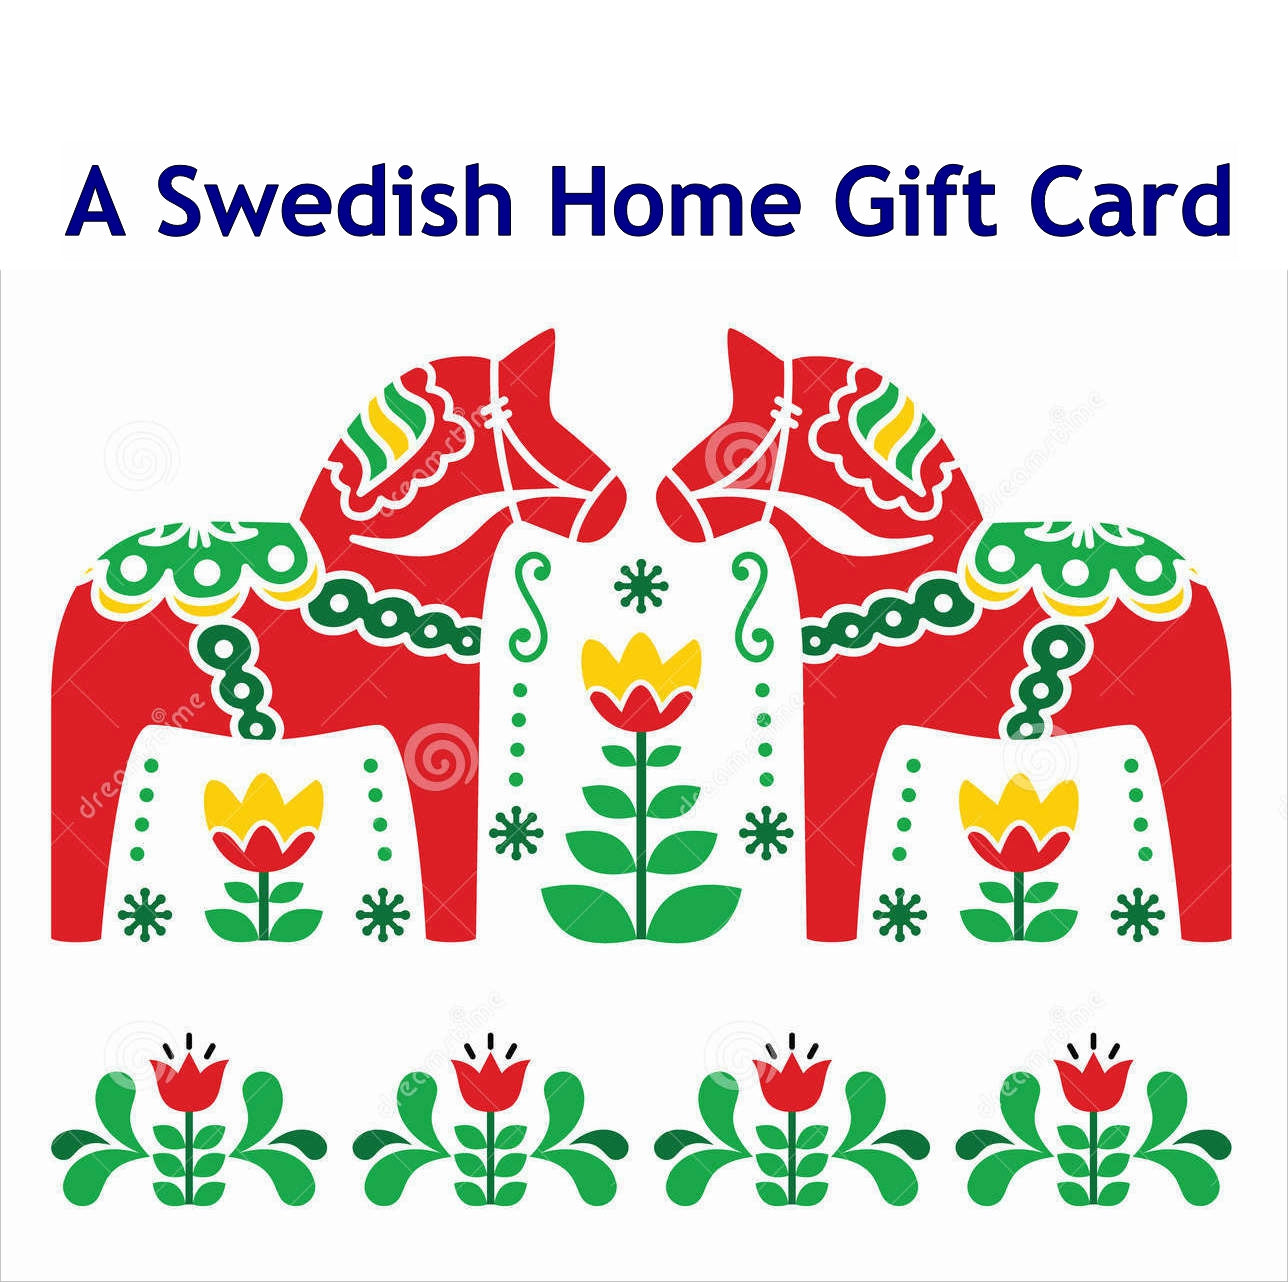 A Swedish Home Gift Card